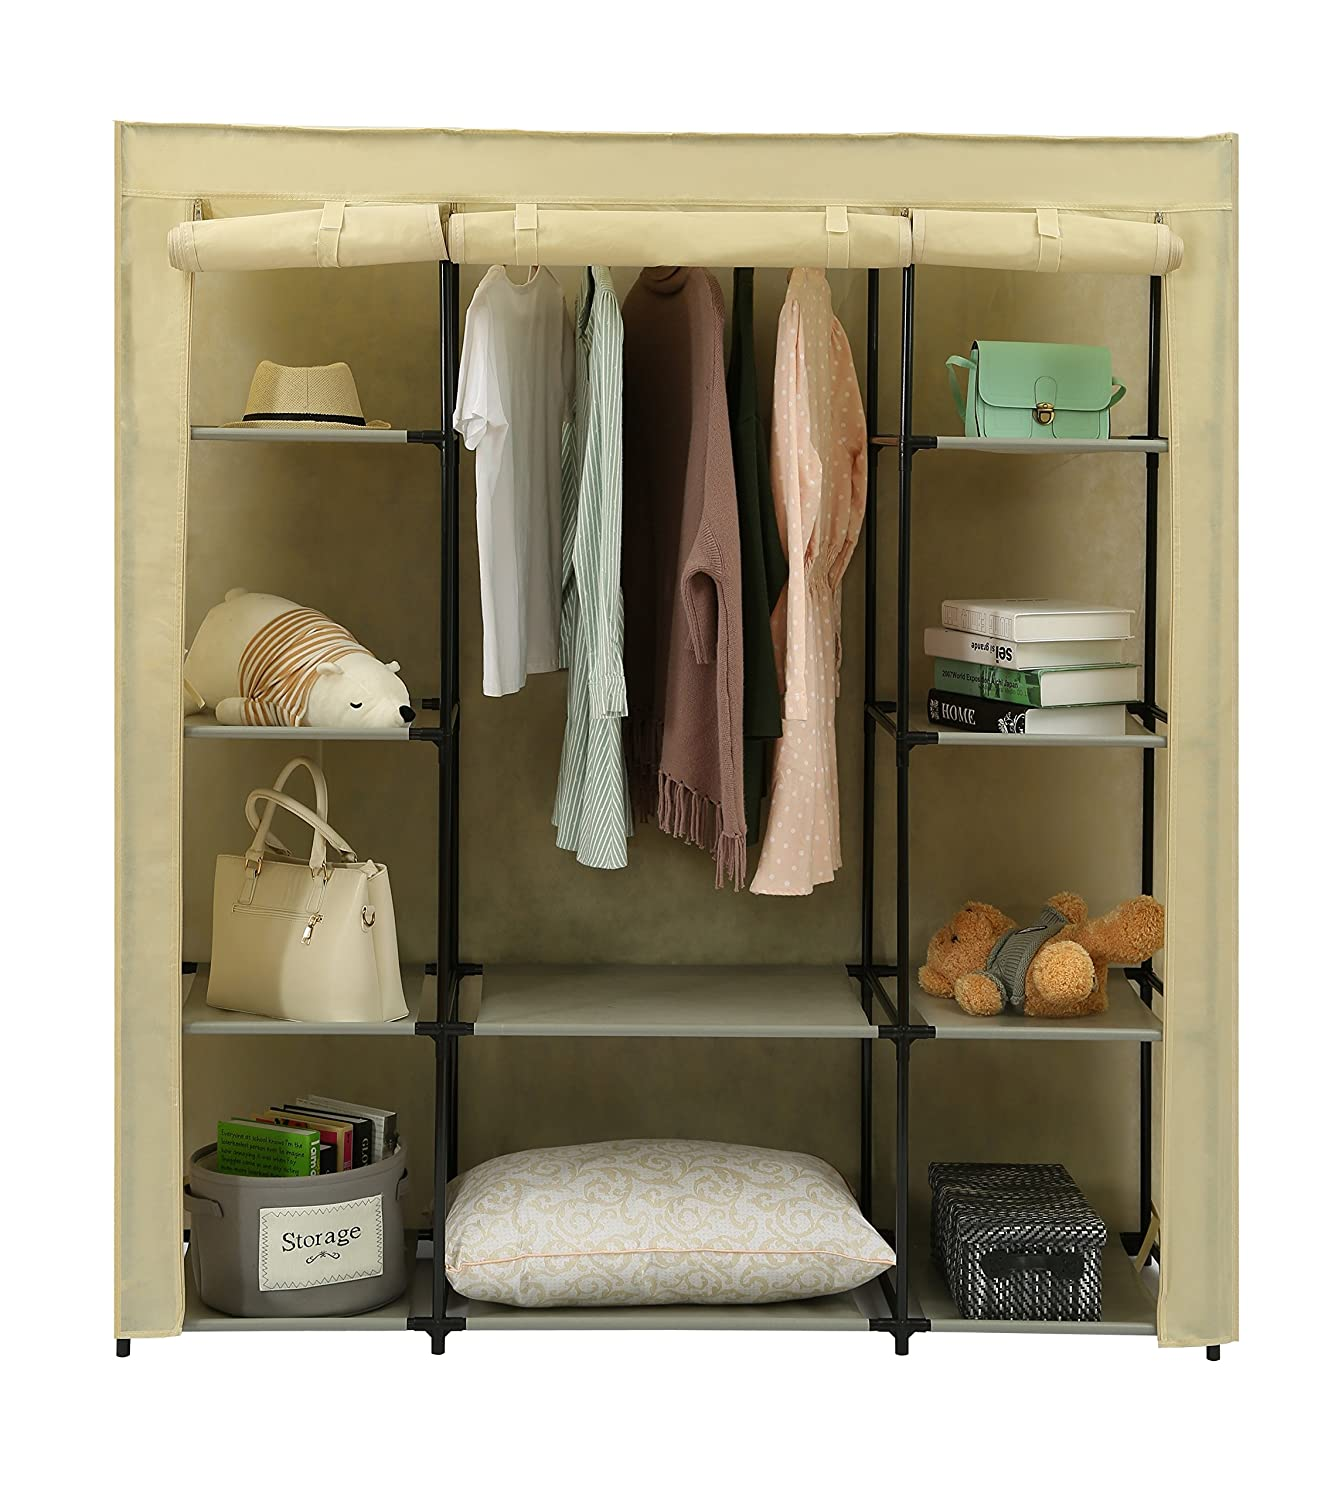 "Homebi Clothes Closet Portable Wardrobe Durable Clothes Storage Organizer Non-woven Fabric Cloth Storage Shelf with Hanging Rod and 10 Shelves for Extra Storage in Beige, 59.05""W x 17.72"" D x 65.4""H"